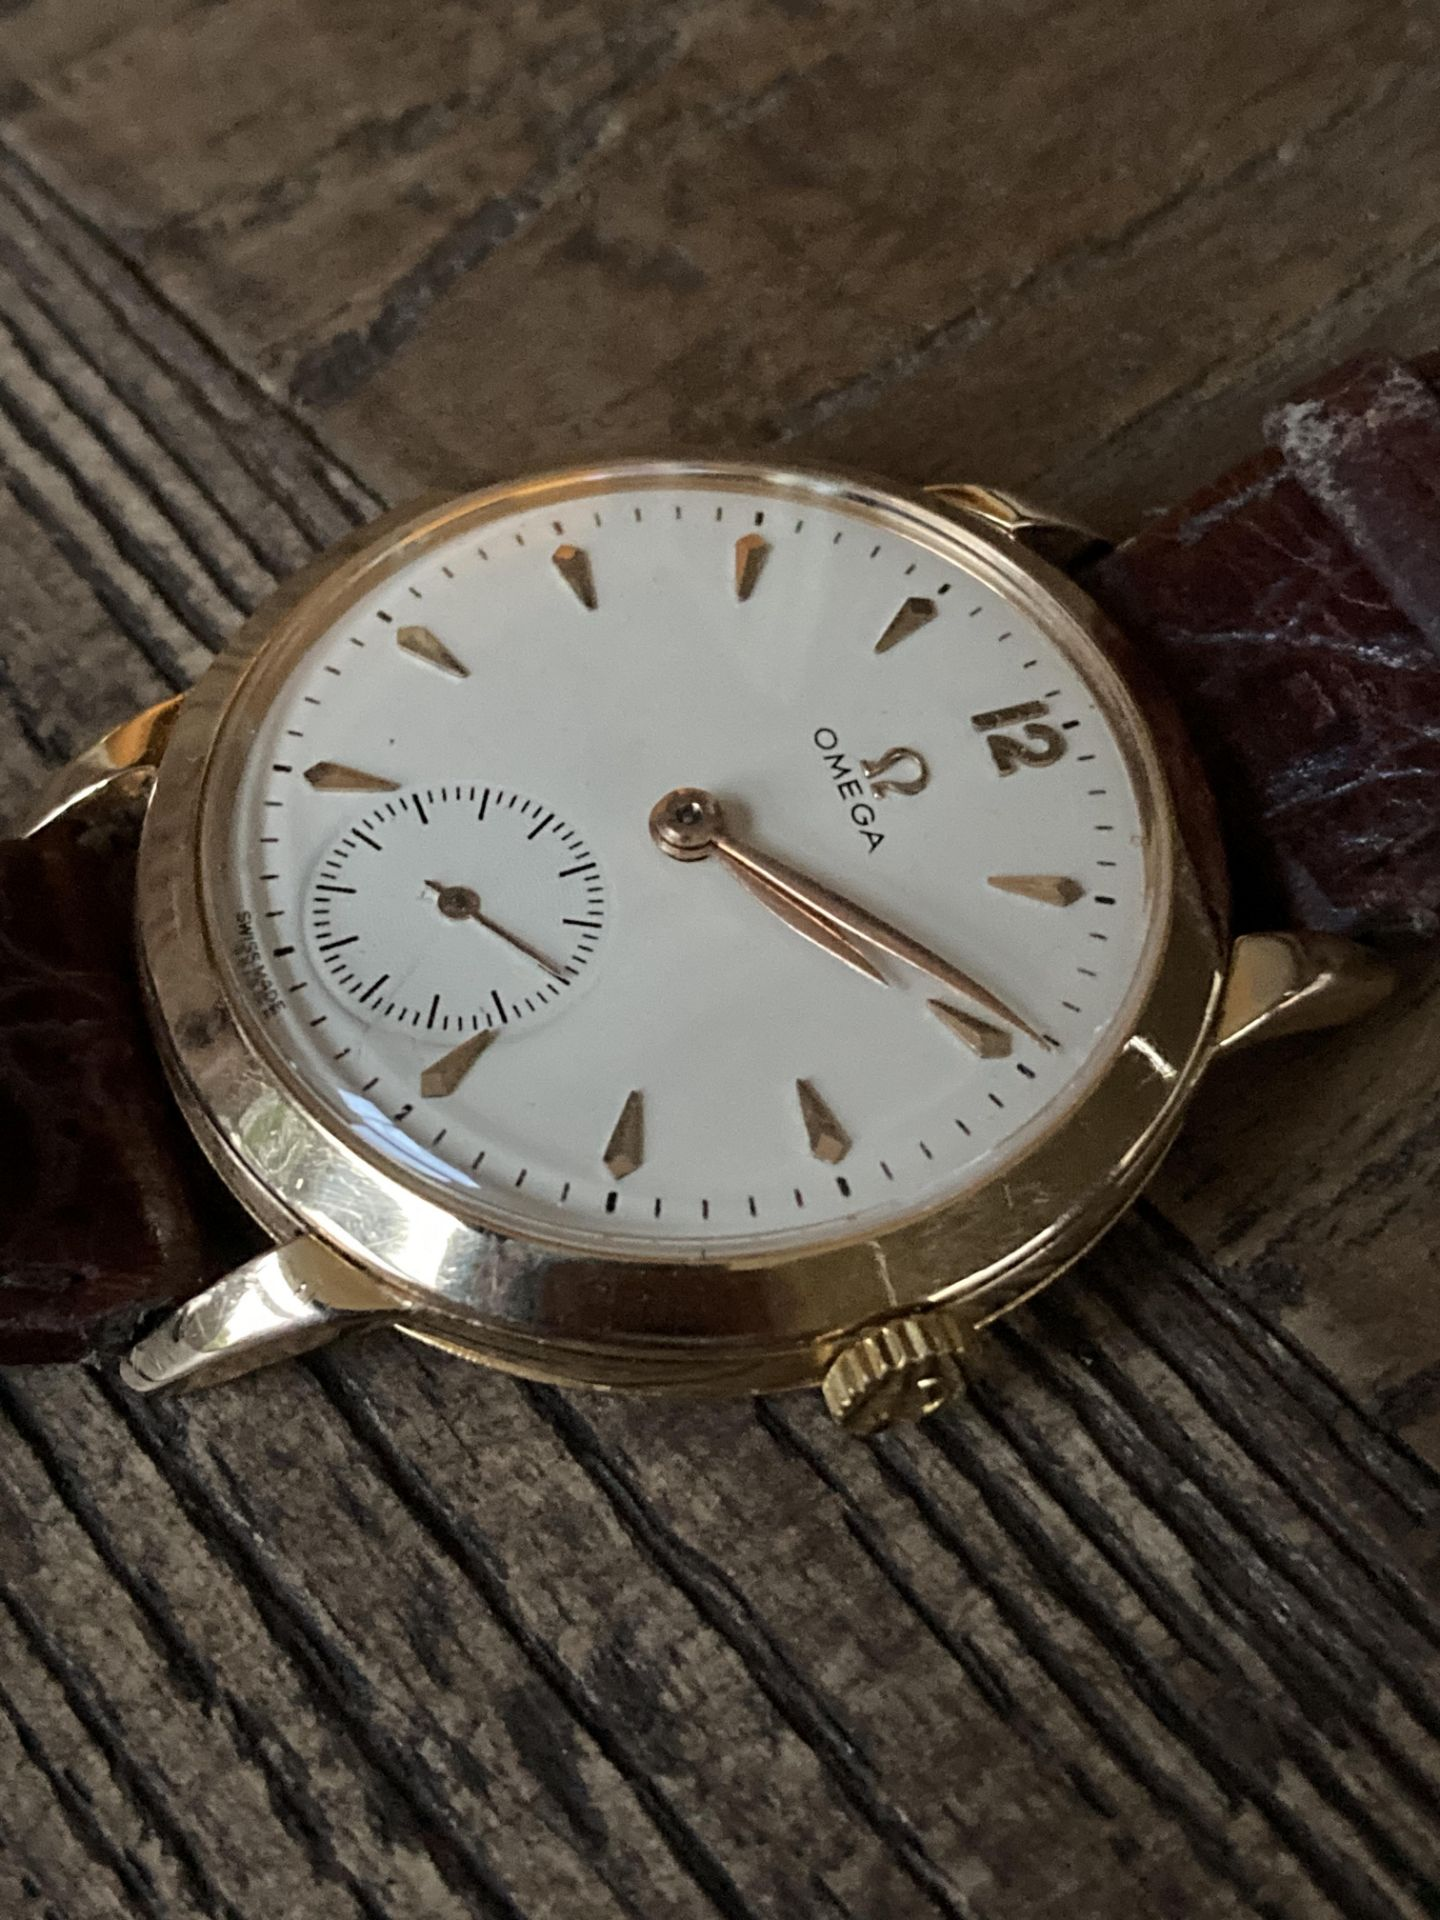 GOLD OMEGA DRESS WATCH - 35mm - Image 3 of 3